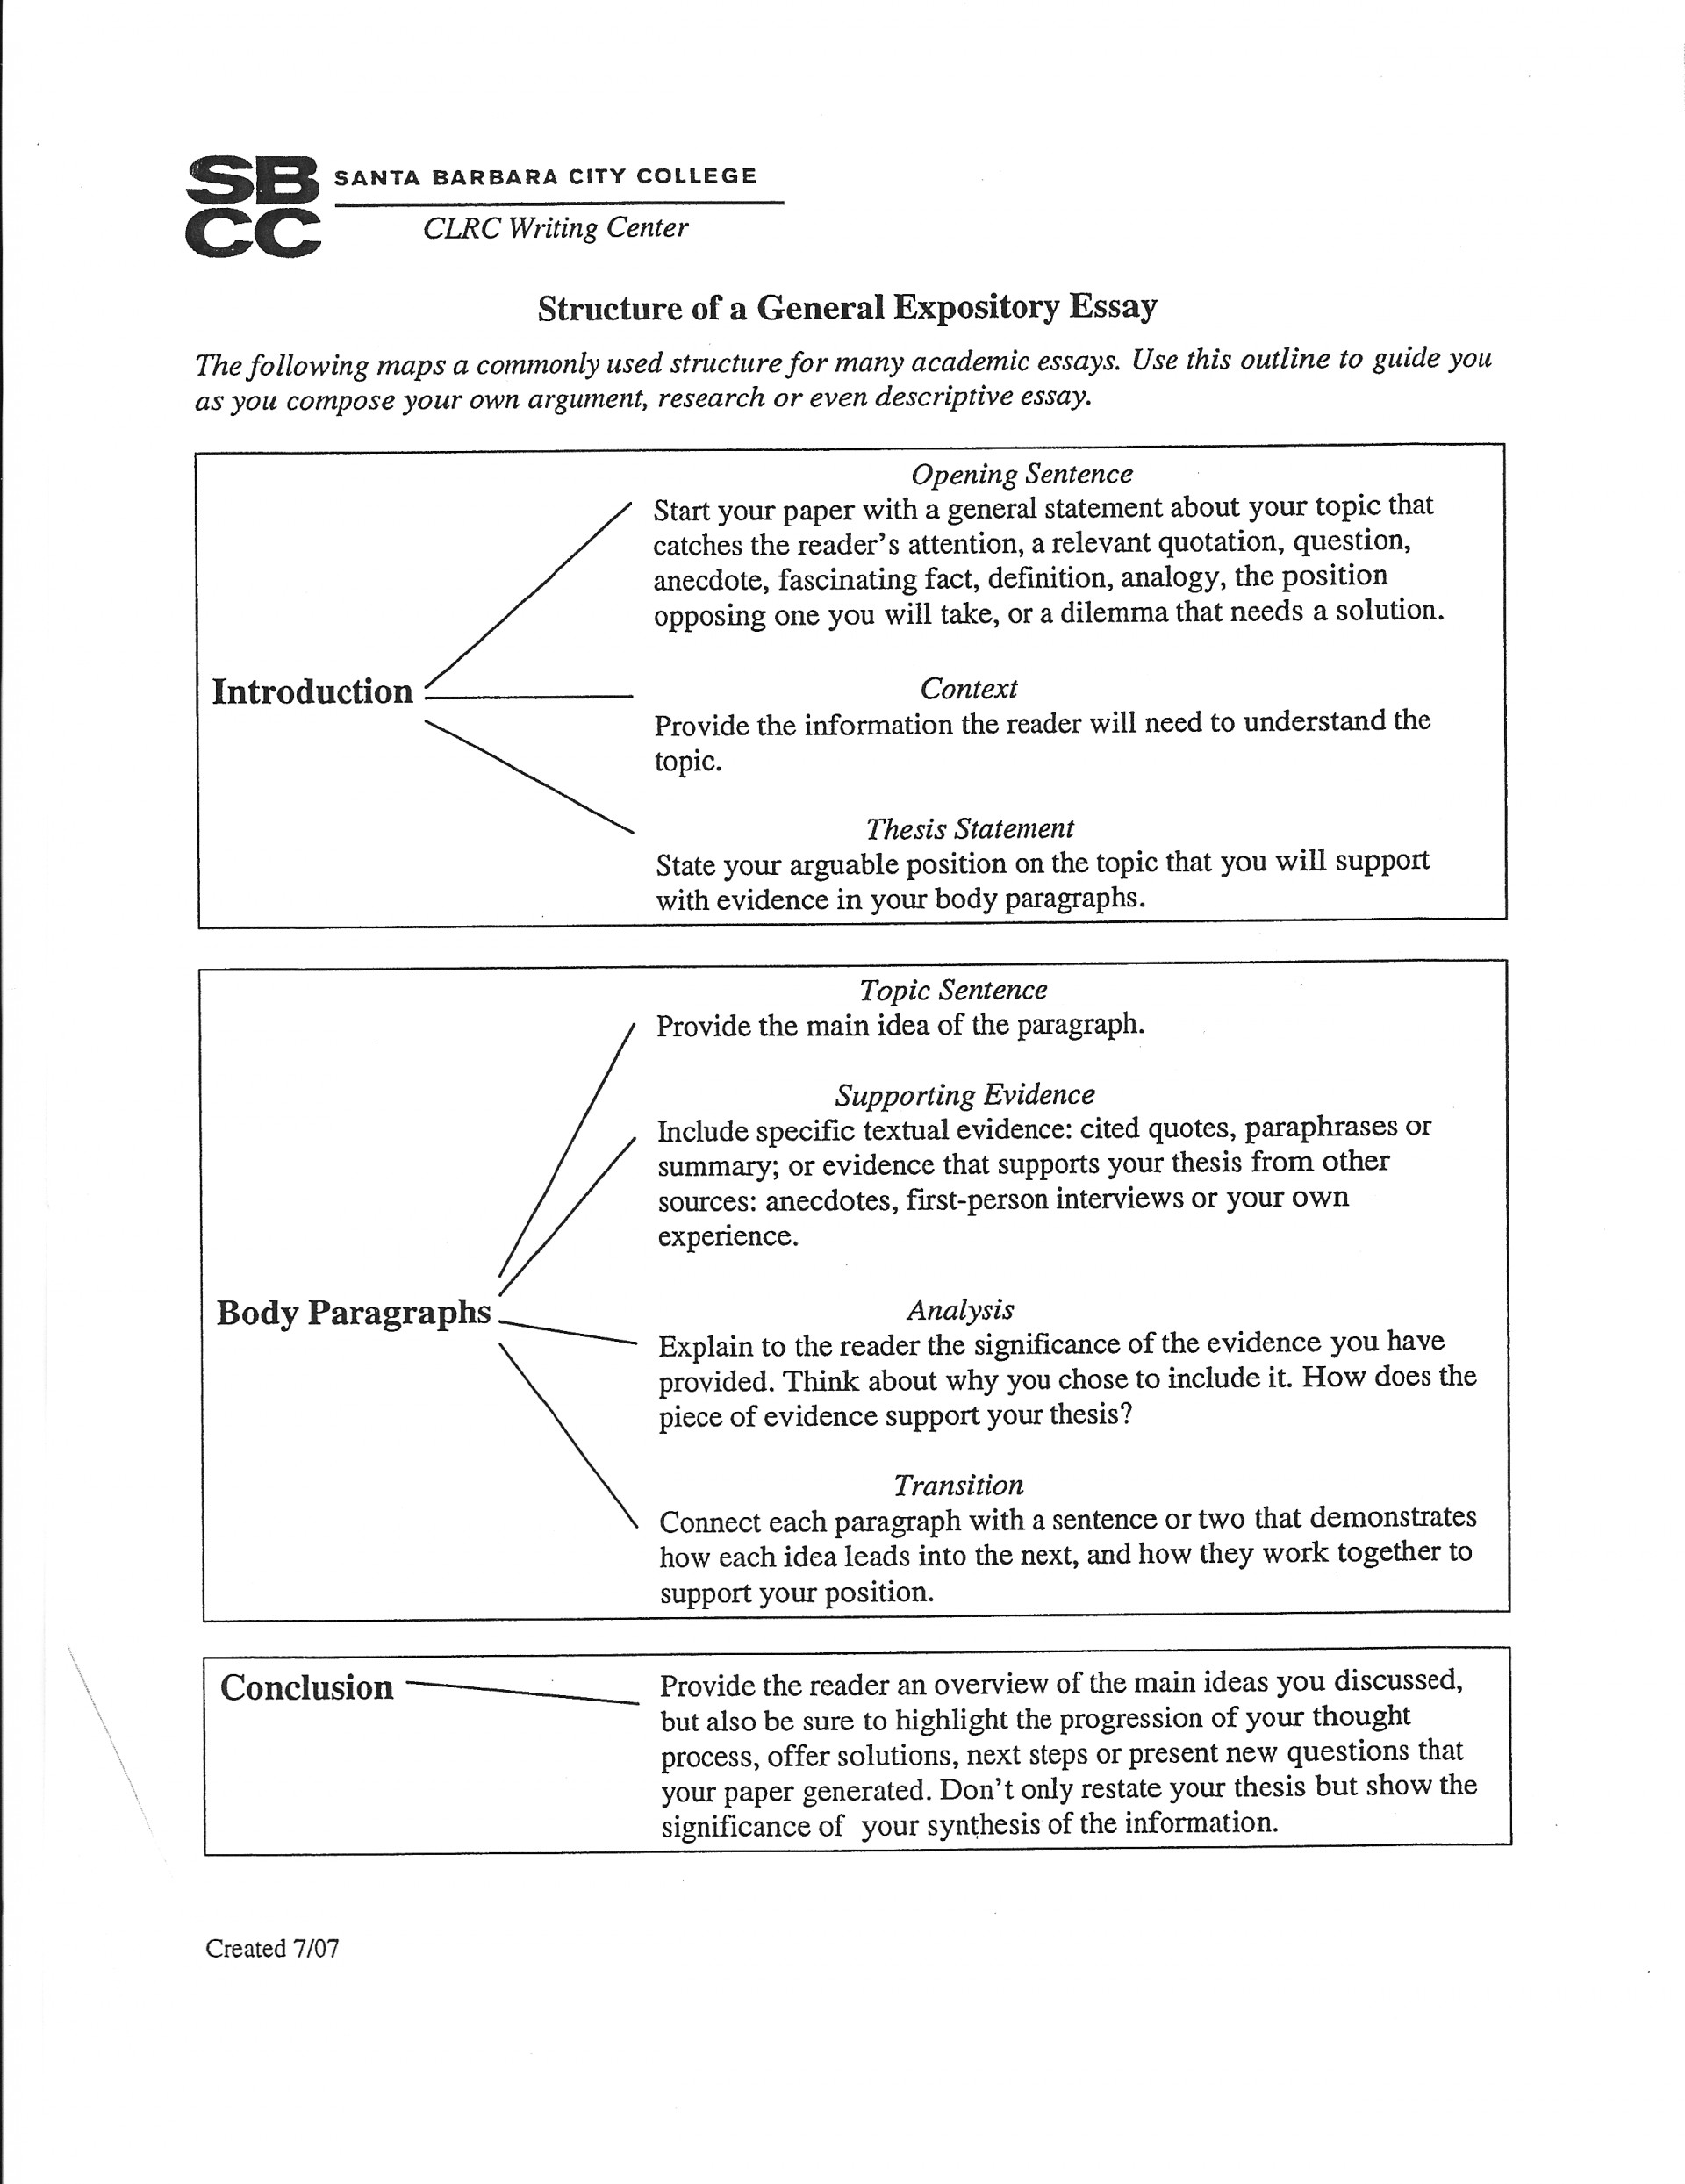 005 Informational Essays Essay Writing Examples For Kids Ideas About An Informative Making Sacrifices Br Quizlet Prewriting Activity Brainly Example How To Sensational Write 4th Grade Thesis 1920